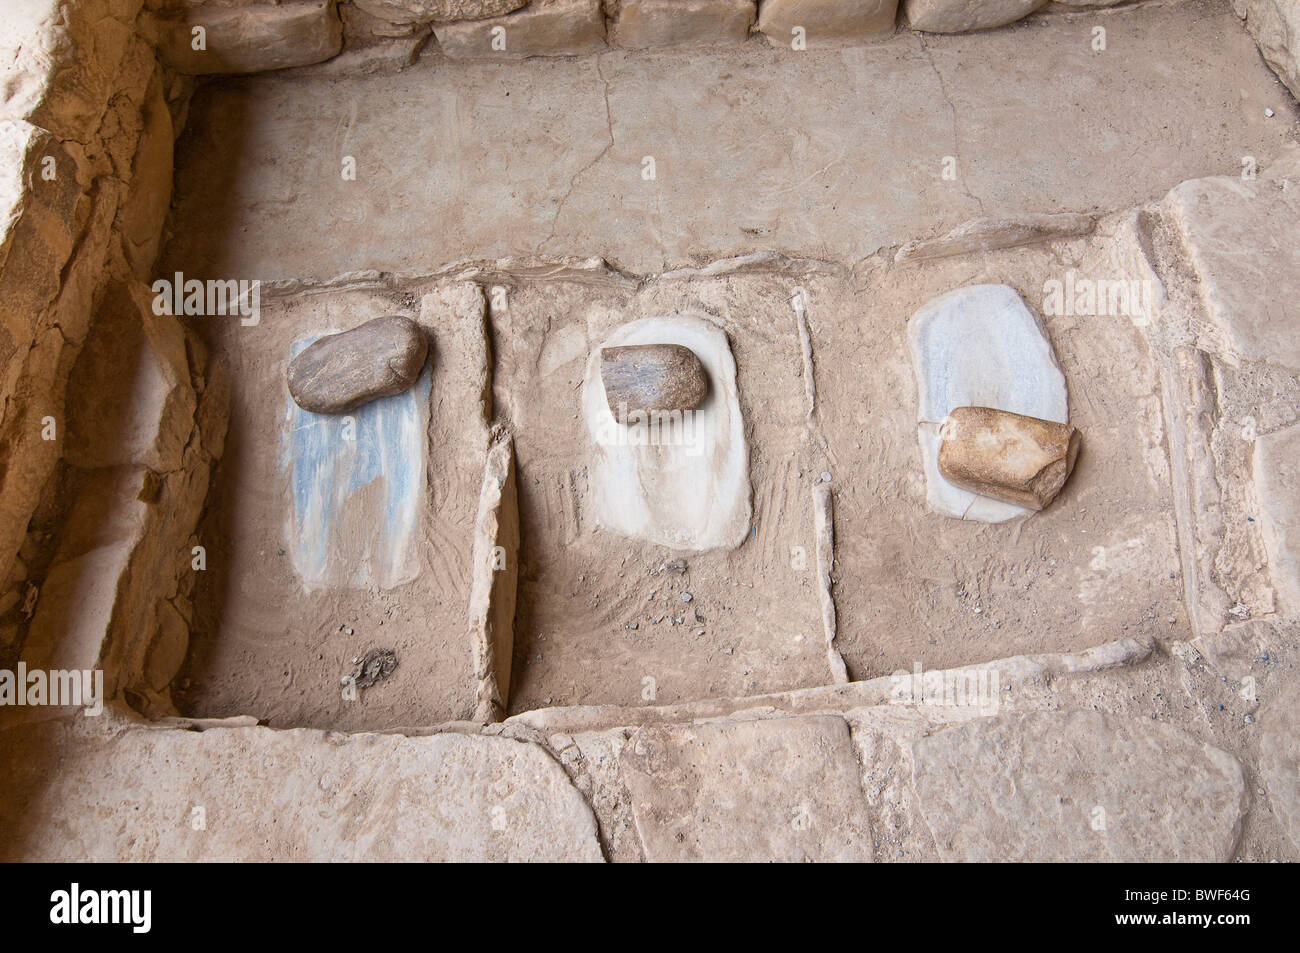 Stones to grind grain in Spruce Tree House, a cliff dwelling of the Ancestral Puebloans American Indians, Mesa Verde - Stock Image